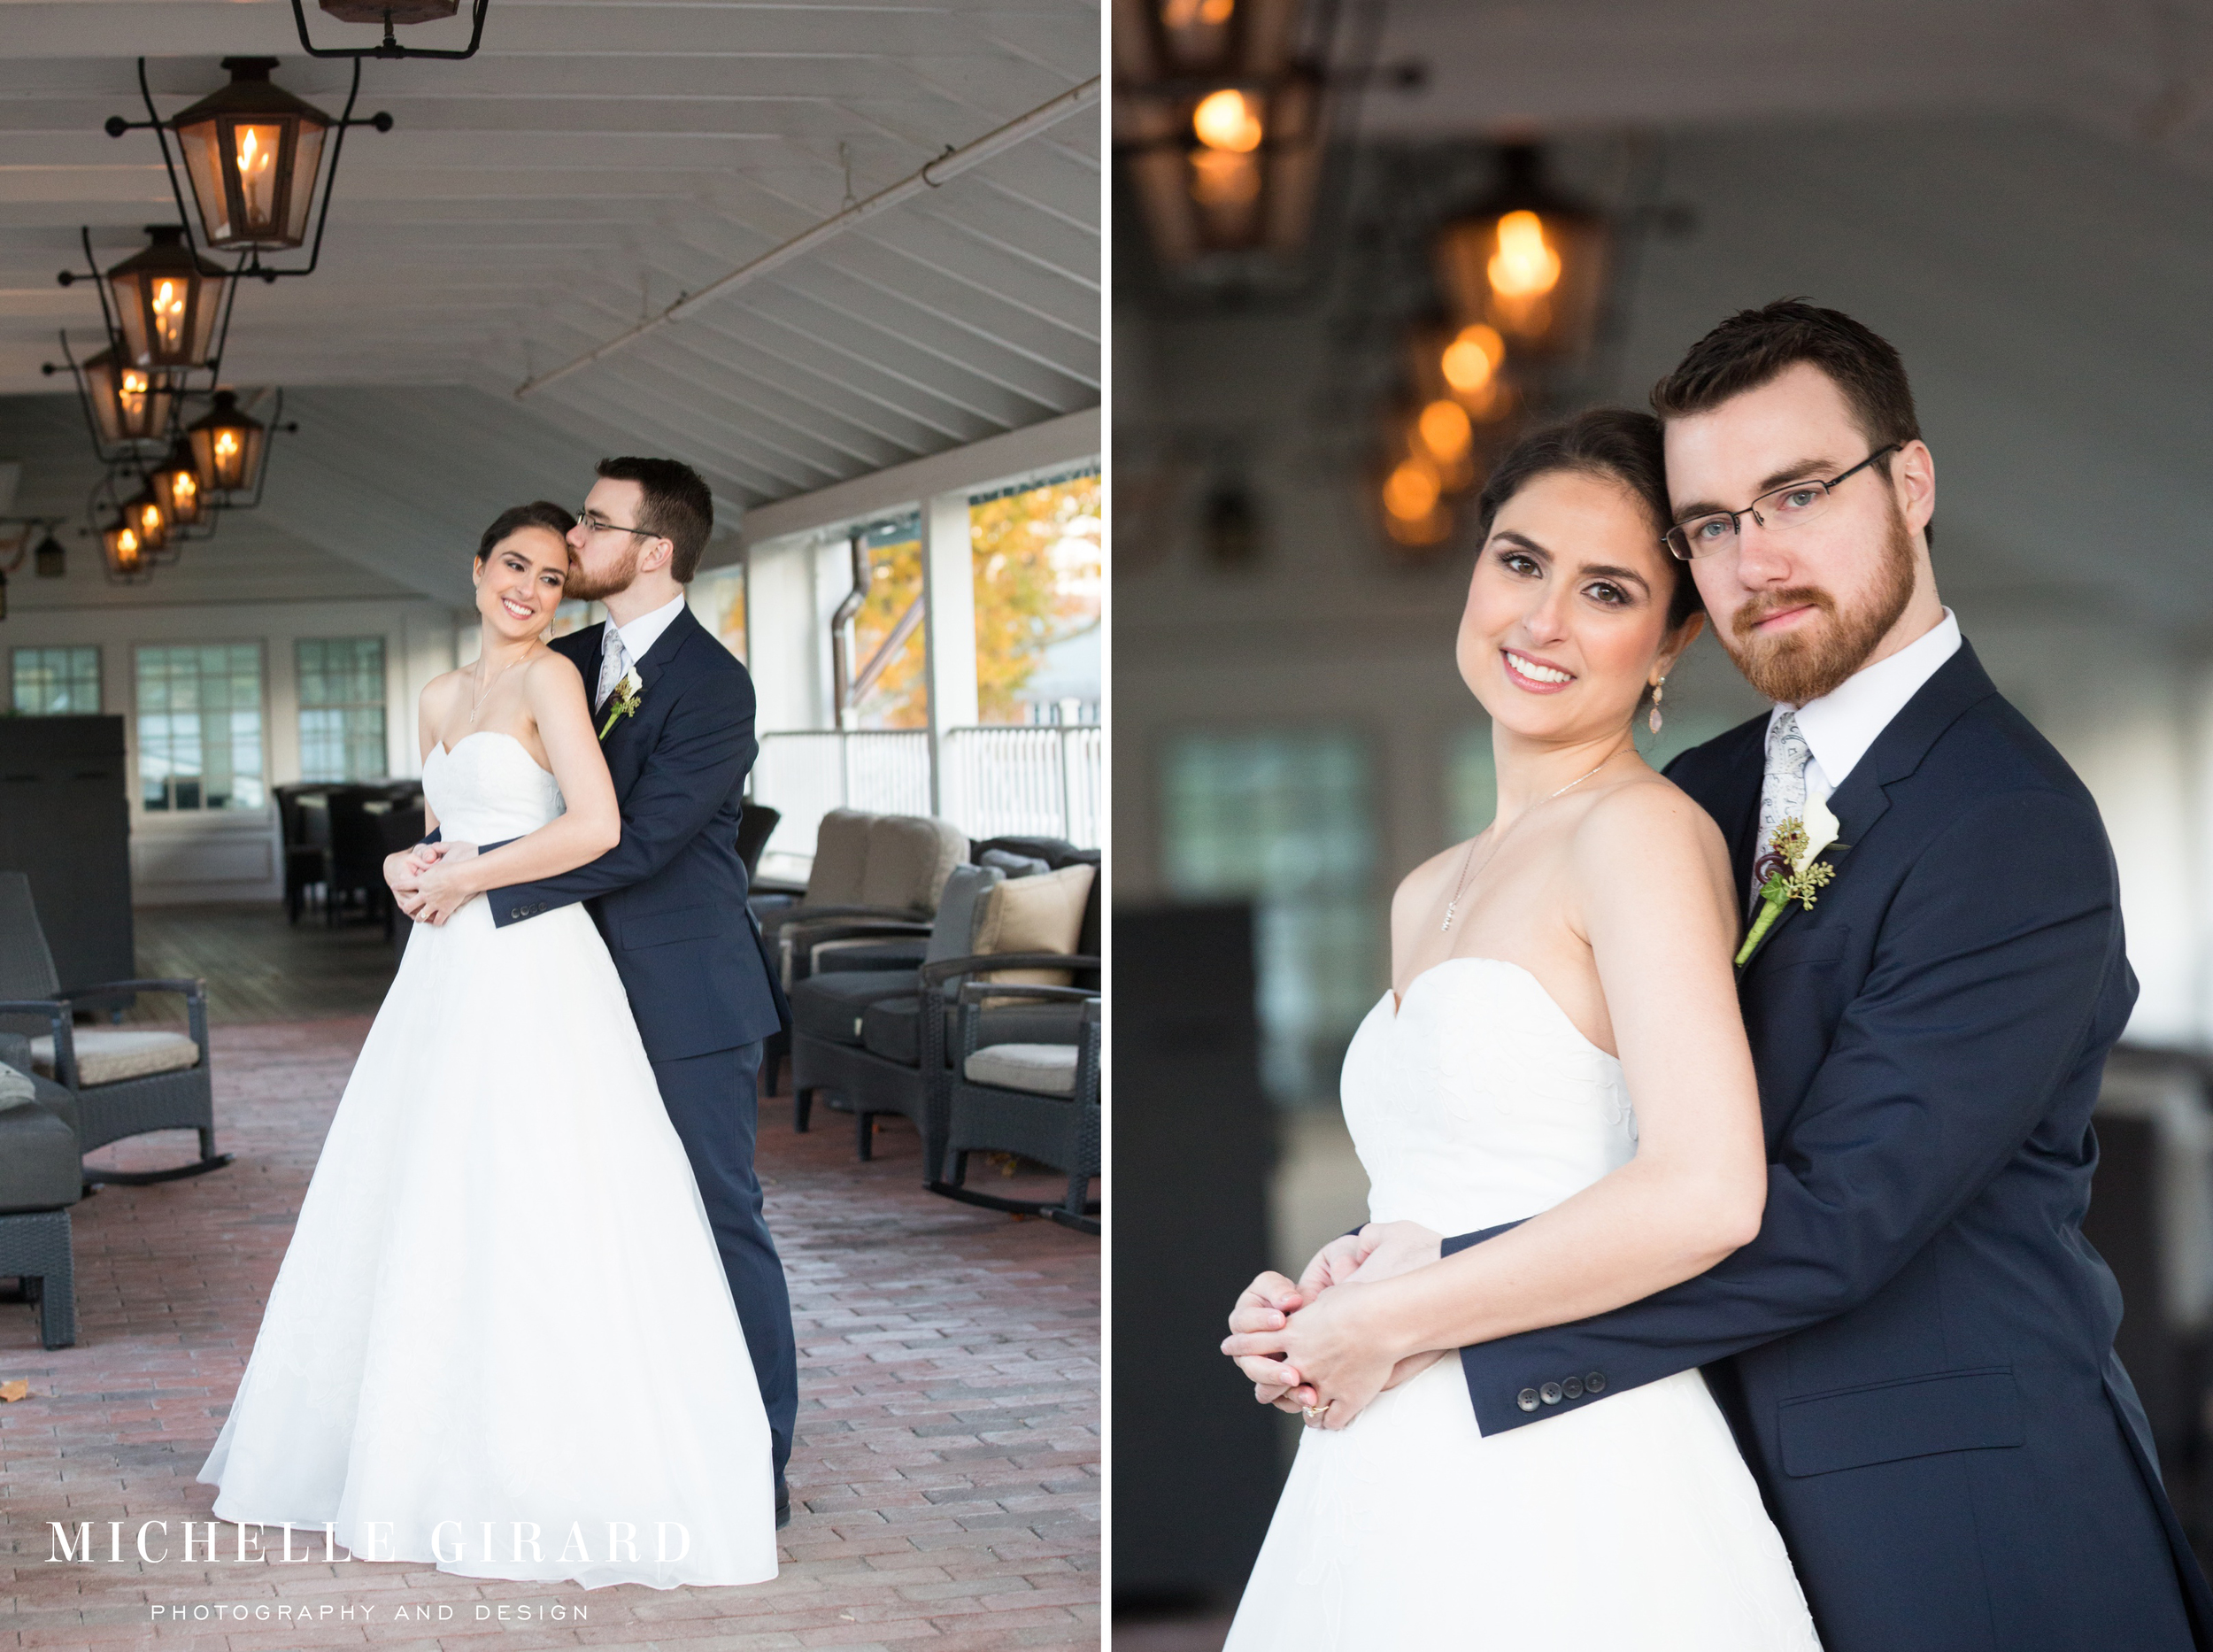 LordJefferyInnWedding_AmherstMa_MichelleGirardPhotography12.jpg